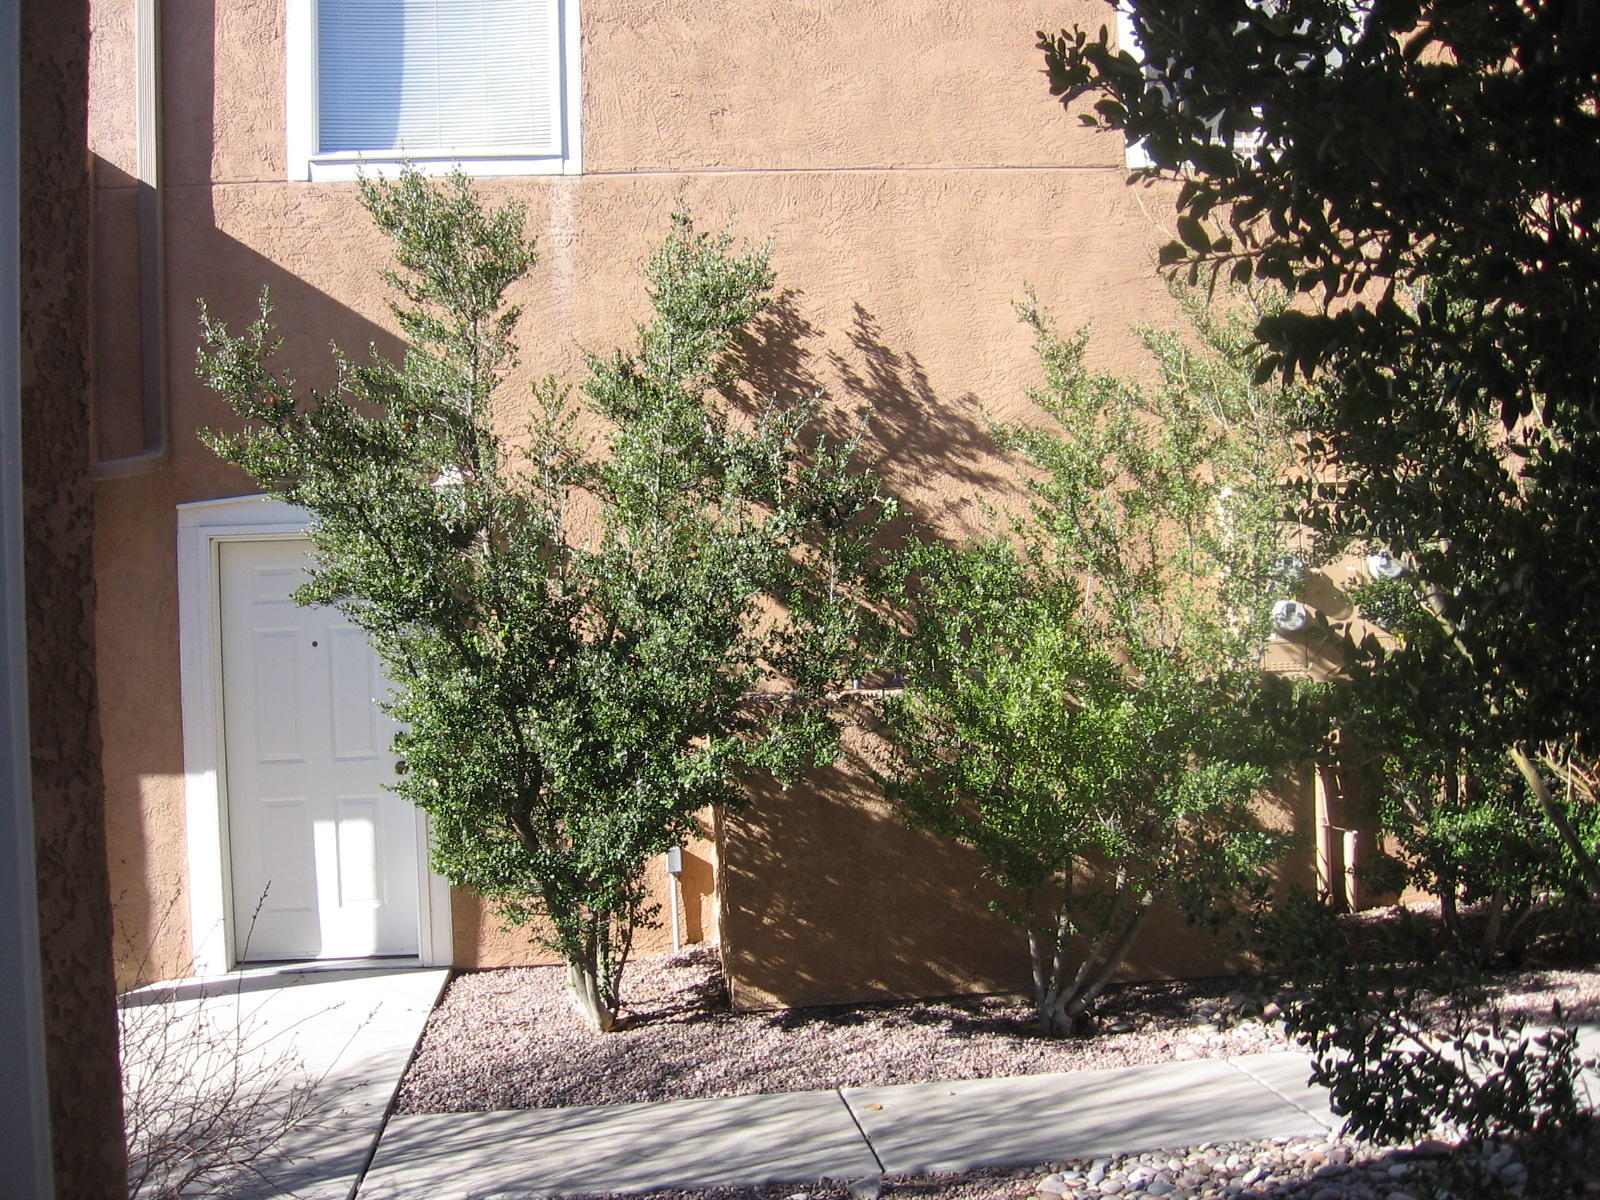 Exceptional condo with bamboo floors throughout and tile in the 2 bathrooms. New appliances, newly painted and in top condition.  2 bedrooms, 2 baths, ceiling fans,  skylights, big walk-in closet, balcony, attached garage.  And only 2 blocks from NMT campus.  Even the exterior door is new and the brushed chrome door hardware is gorgeous!